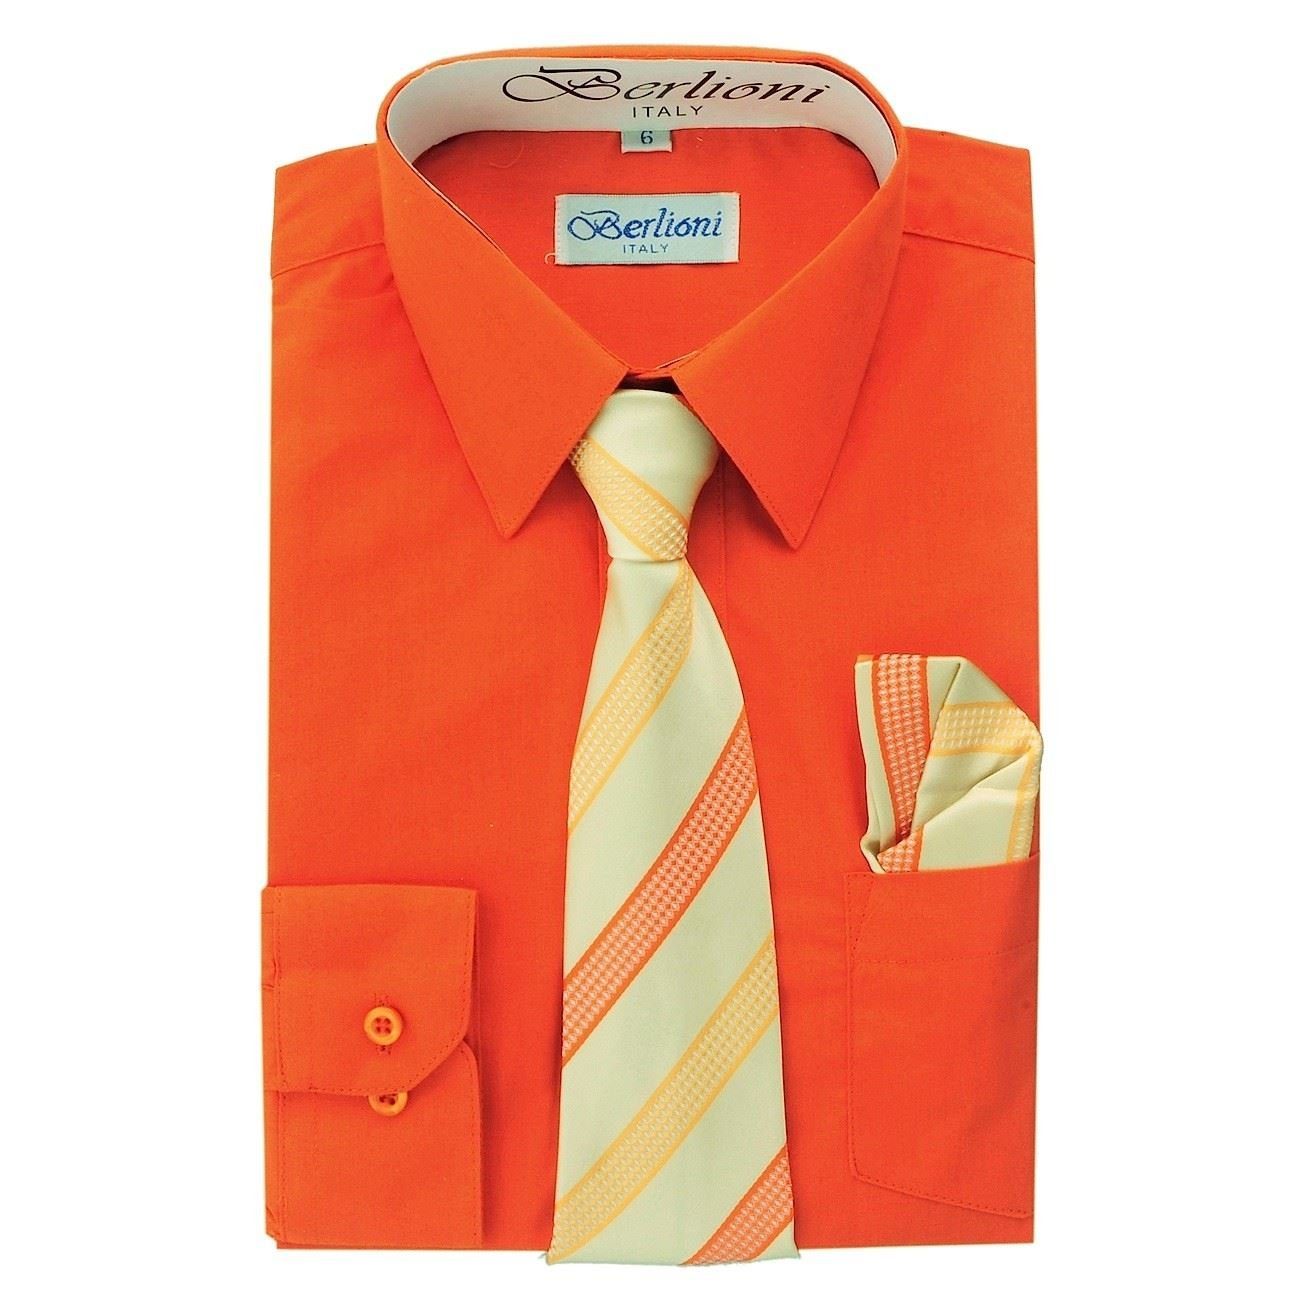 Berlioni Italy Kids Boys Dress Shirt with Tie & Hanky Long Sleeves Orange